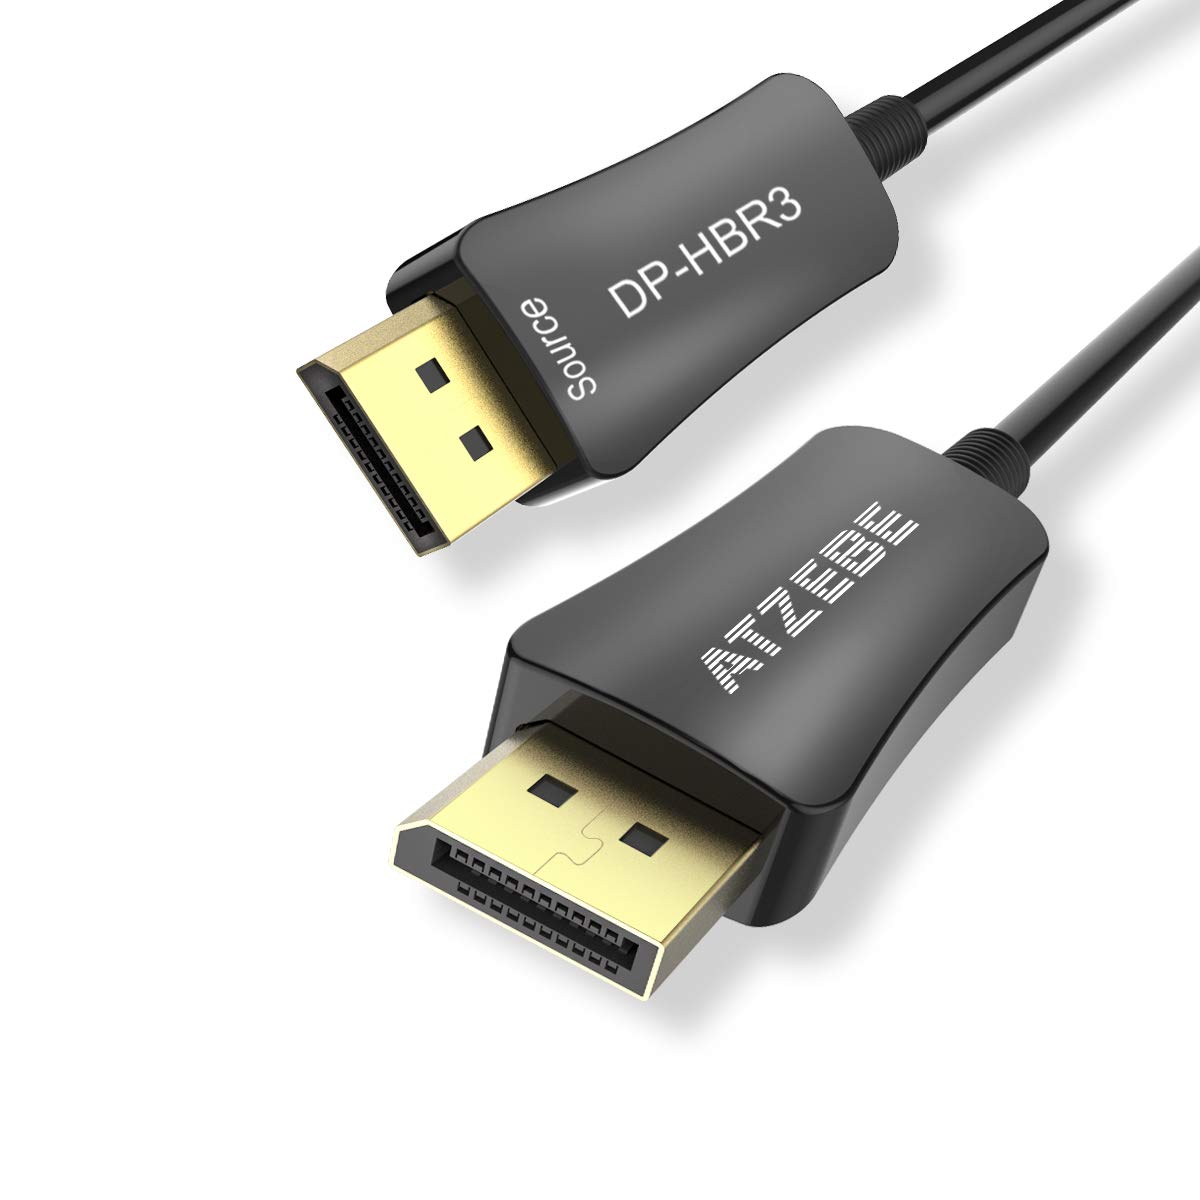 ATZEBE DP Fiber Cable 50ft, Fiber Optic Displayport 1.4 Cable Support 32.4 Gbps, 8k@60hz, 4K@144Hz, Slim and Flexible Fiber DP to DP Cable by ATZEBE